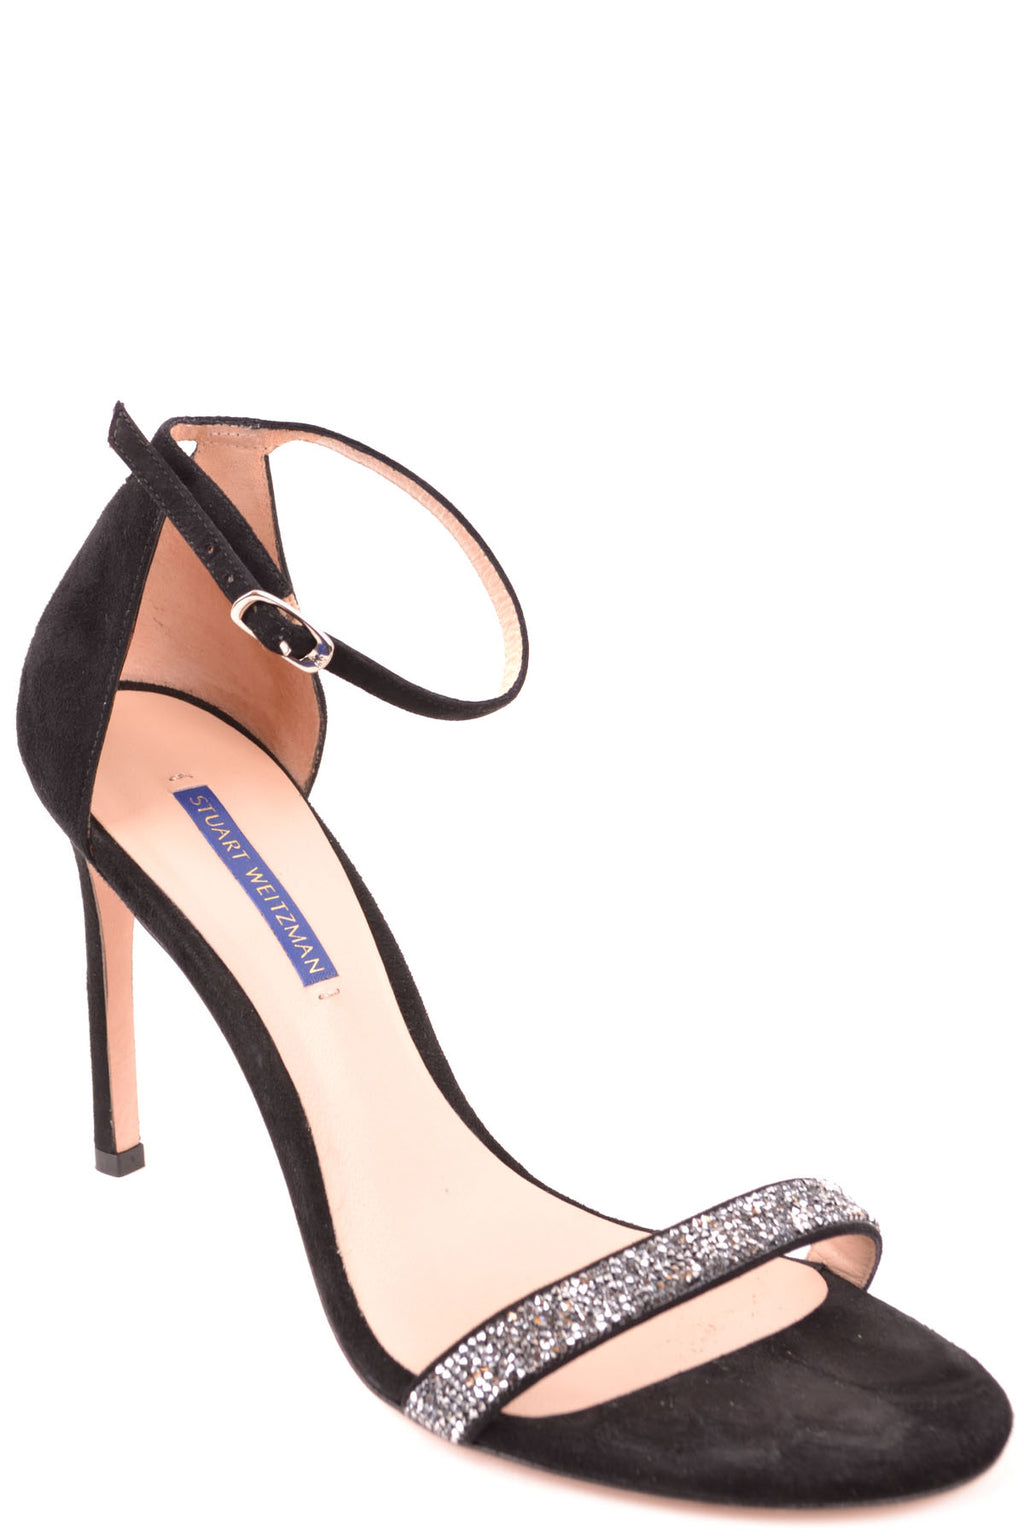 STUART WEITZMAN Sandals Heels - KATANA FASHION BOUTIQUE